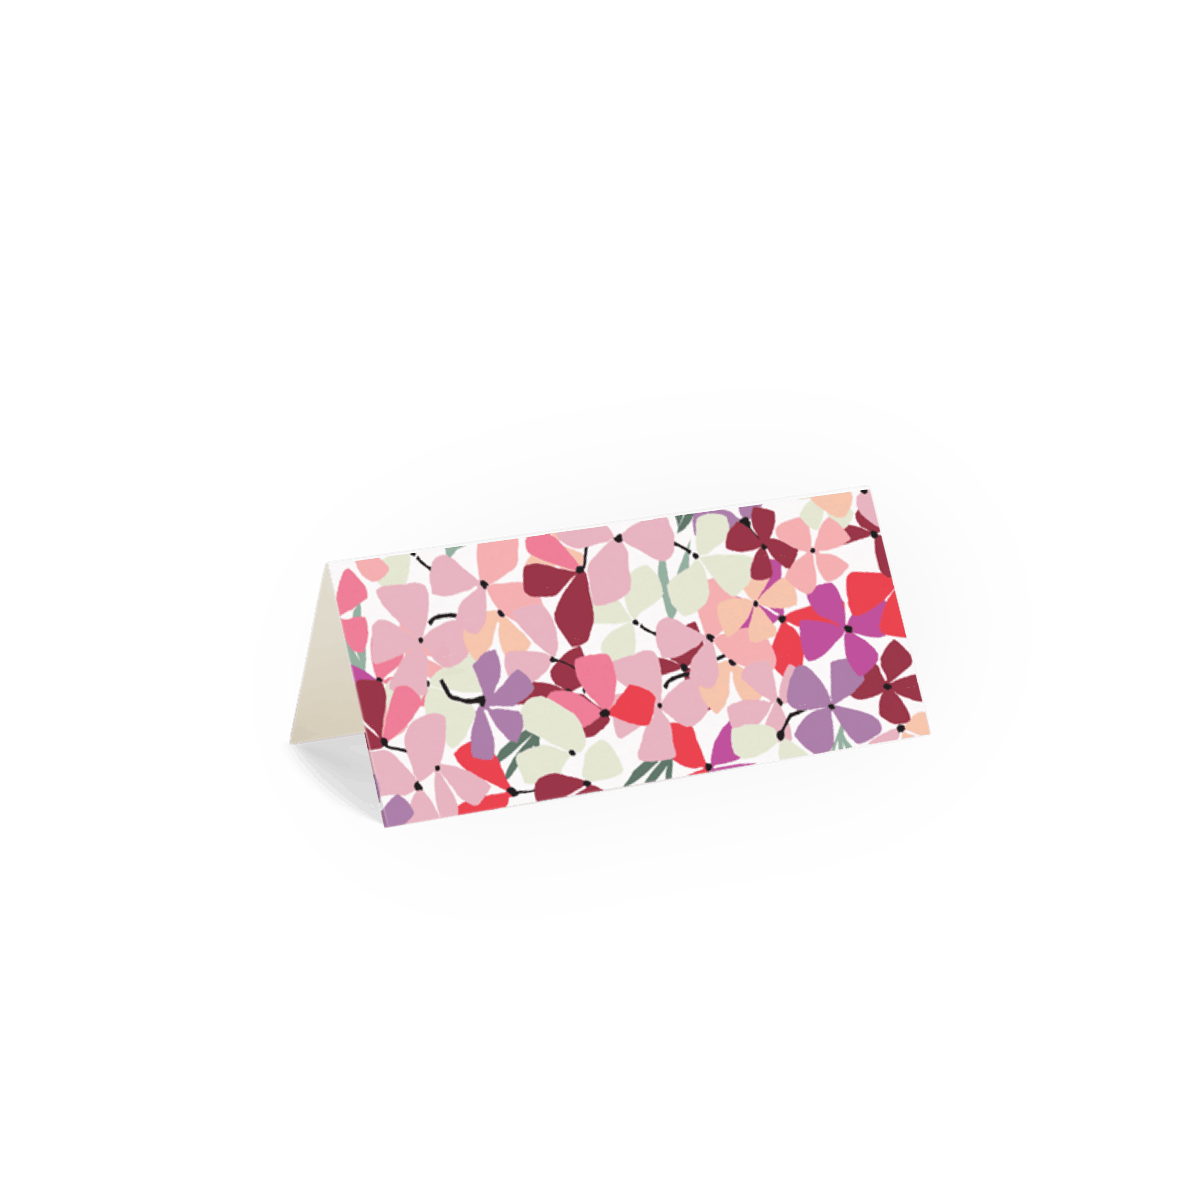 Https%3a%2f%2fwww.papier.com%2fproduct image%2f15709%2f15%2fhortensia pink 4157 back 1483967358.png?ixlib=rb 1.1